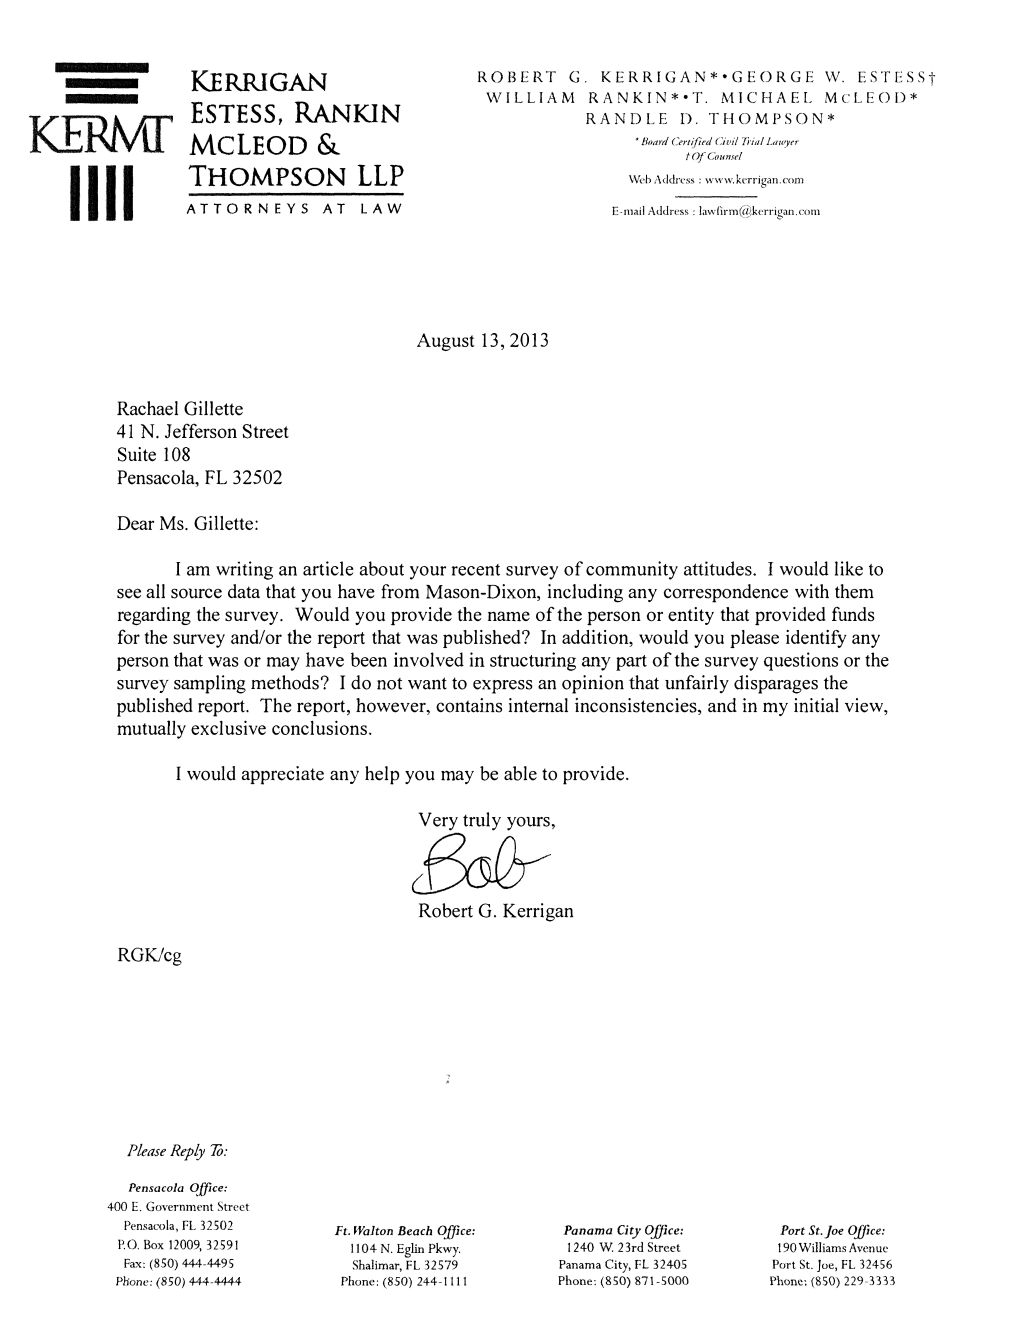 Pensacola young professionals refusal to disclose community issues pyp 8 13 13 kerrigan request letter altavistaventures Image collections